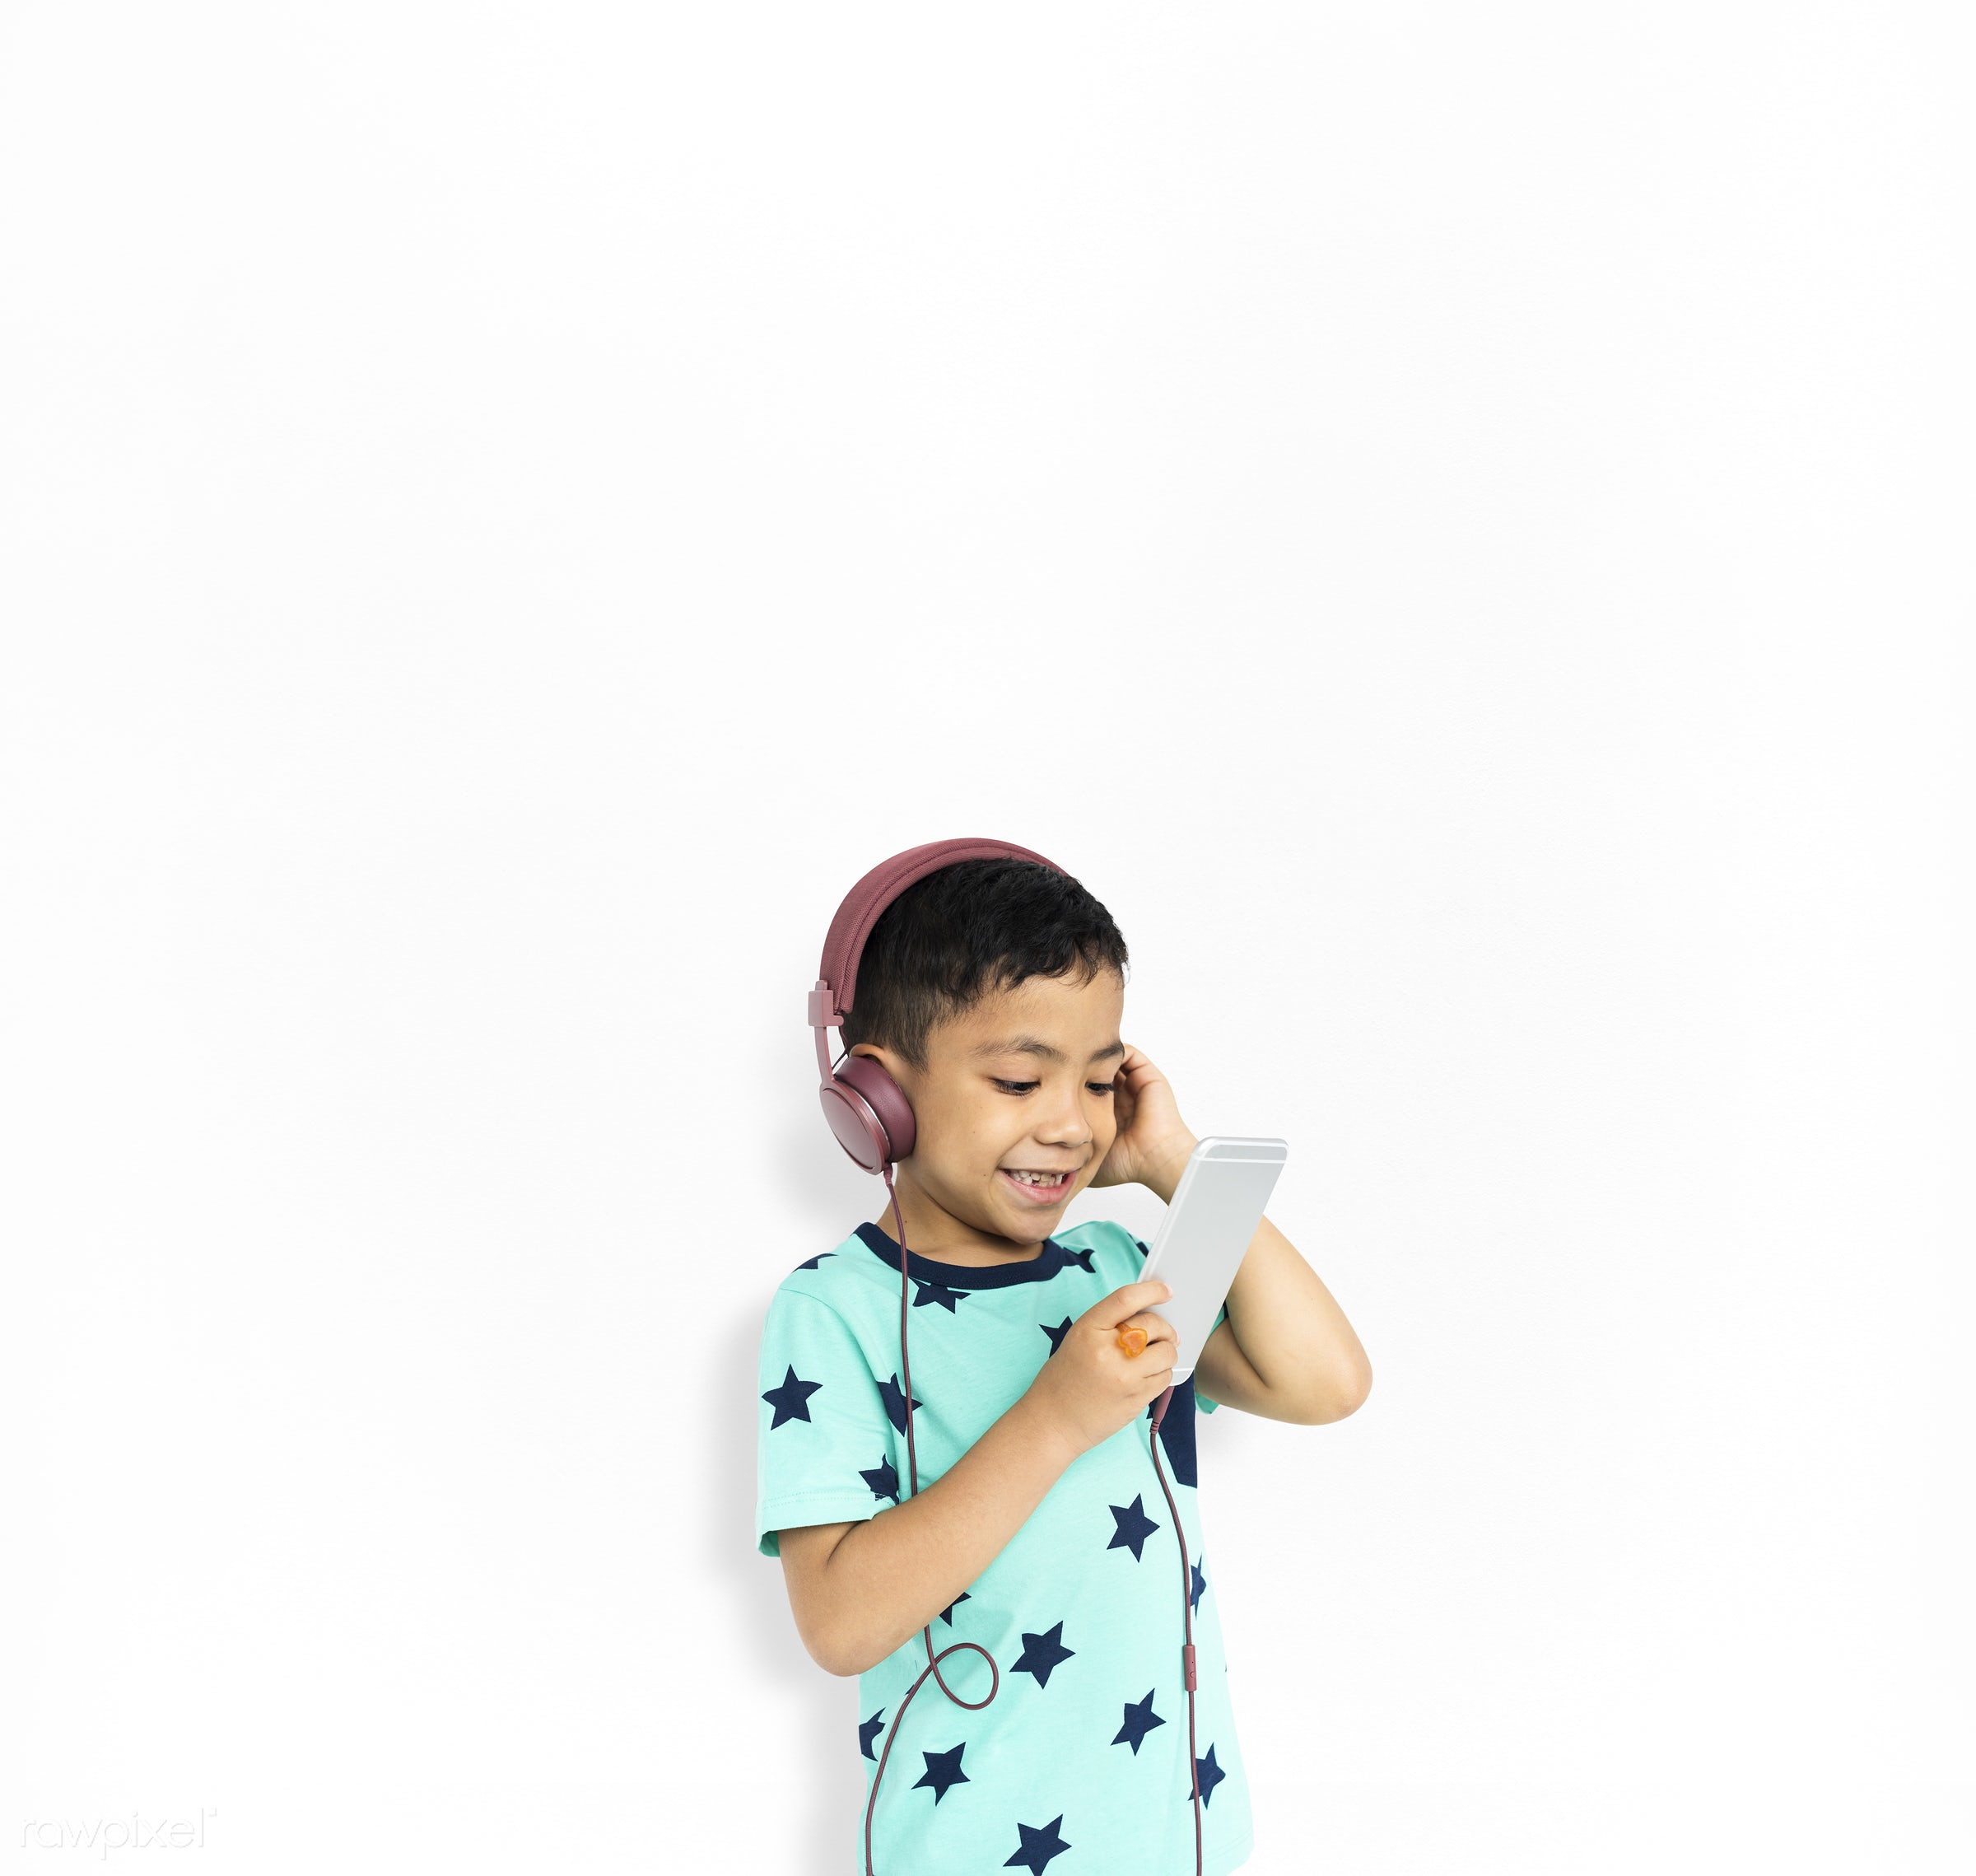 studio, expression, person, isolated on white, cute, pretty, people, drawing, child, happy, casual, childhood, cheerful,...